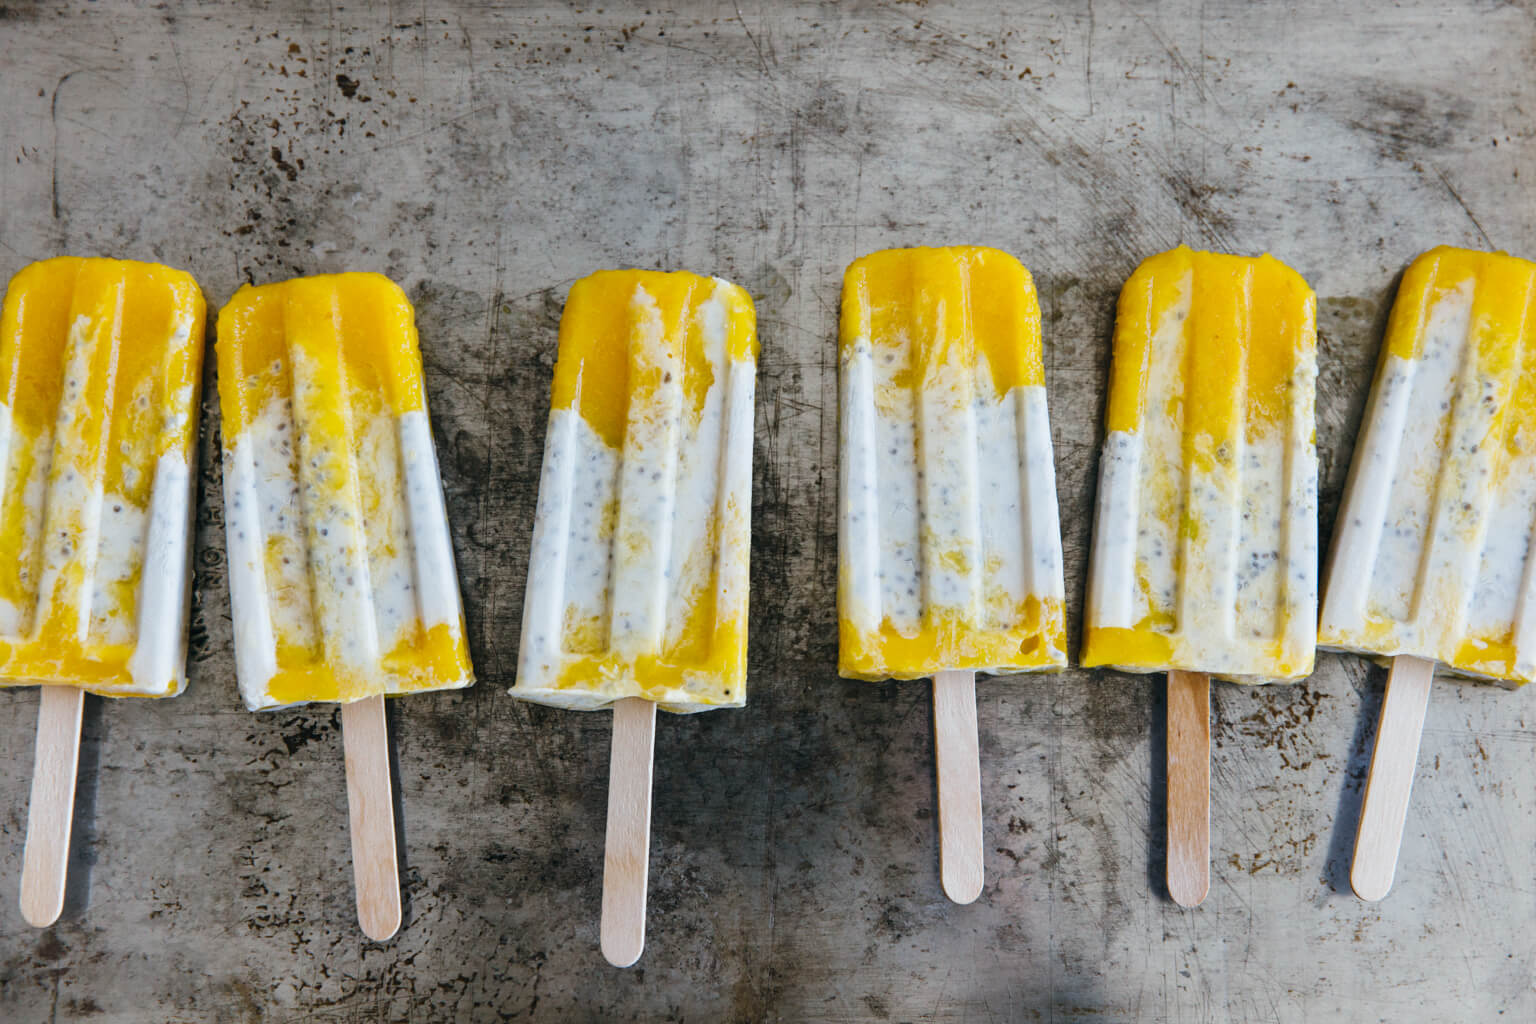 5 Droolworthy Popsicles To Keep You Cool This Summer